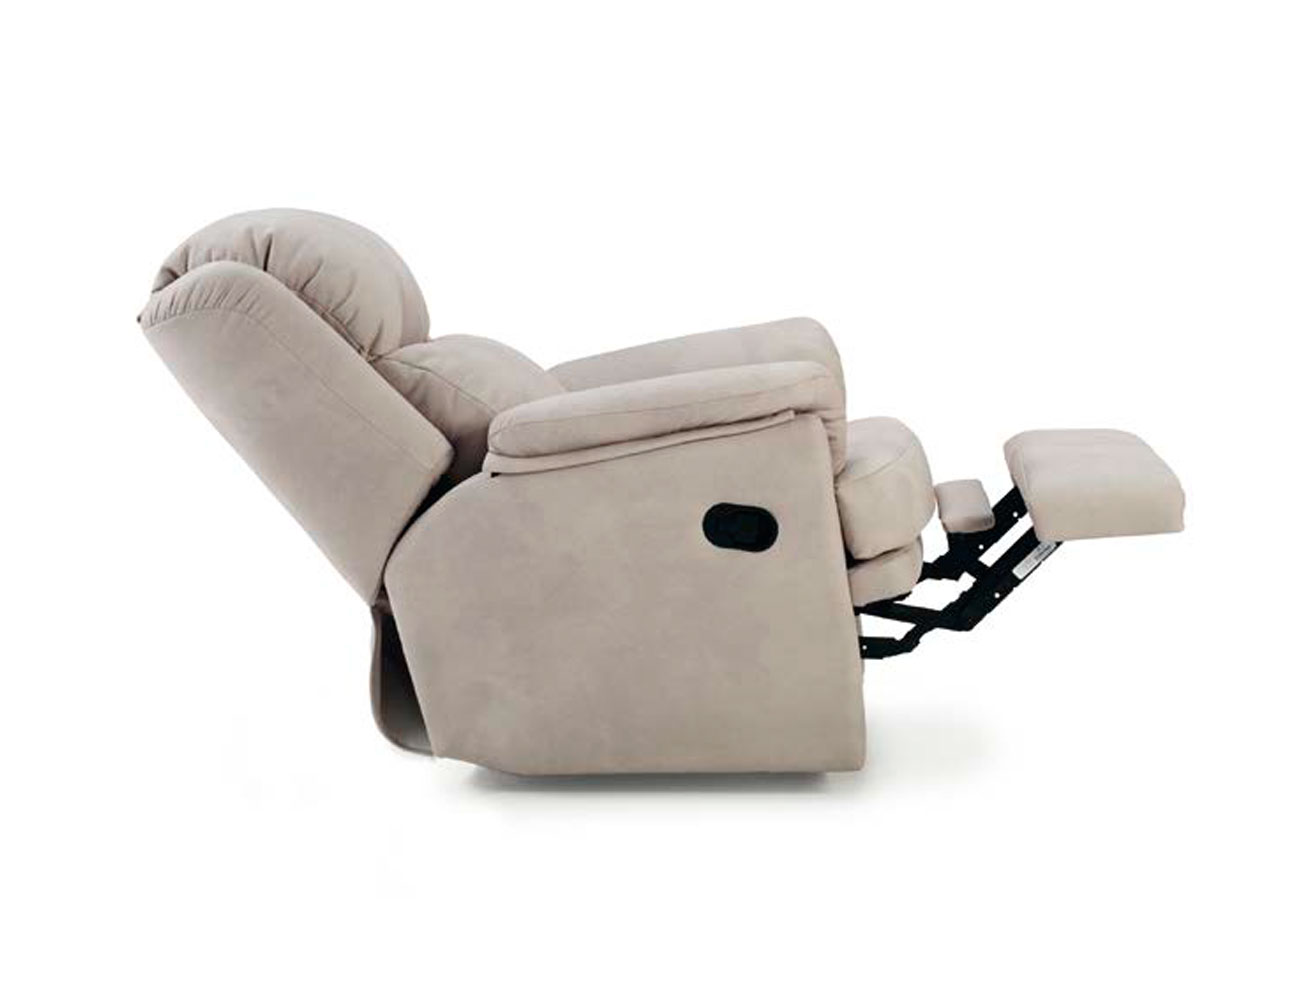 Sillon relax manual palanca esther 12